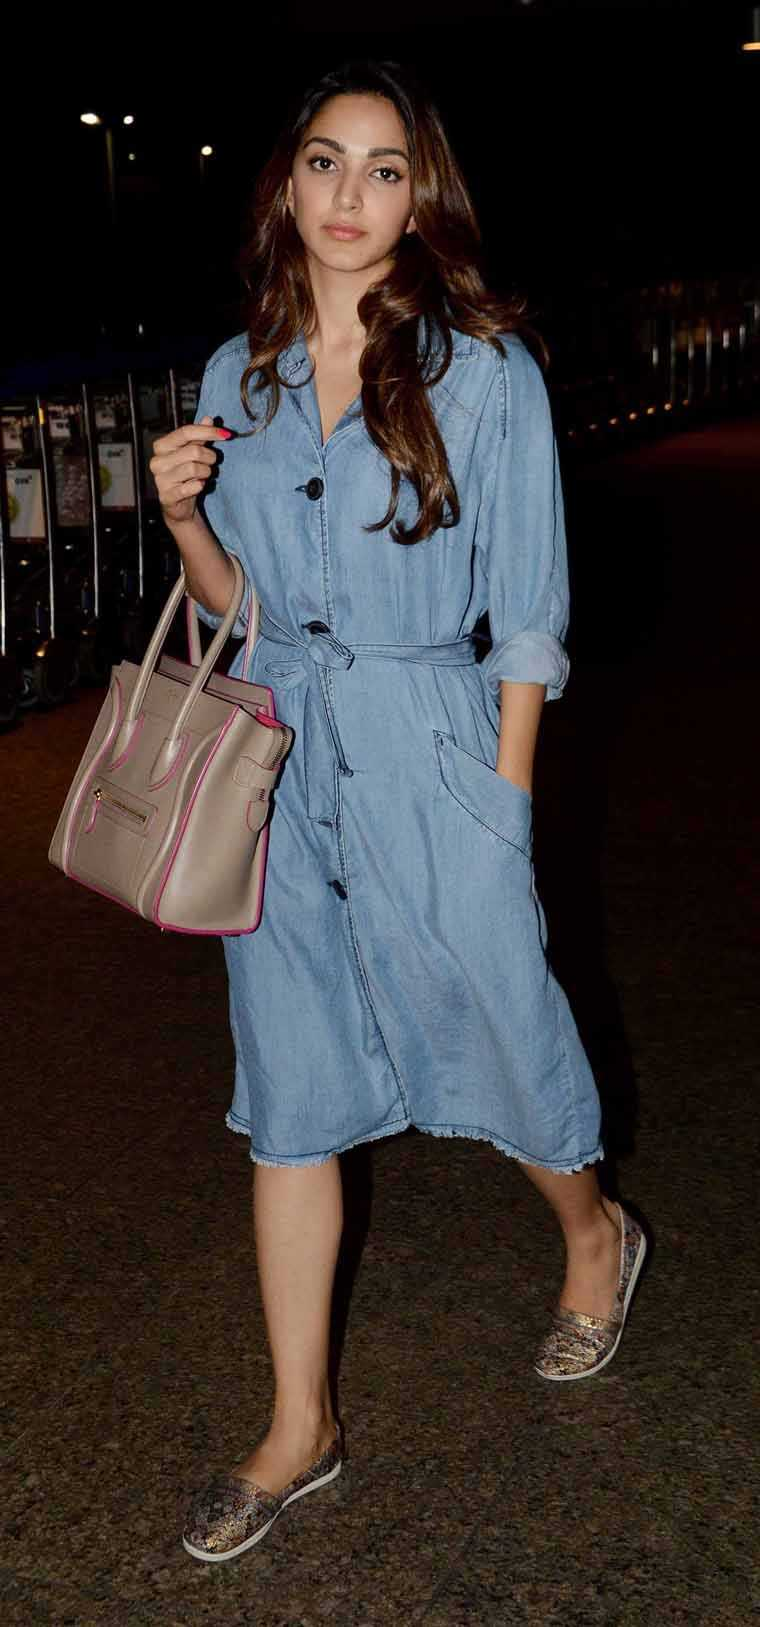 MS Dhoni star Kiara Advani nailed travel style in a chic denim dress, a beige tote bag and a pair of sparkly slip-ons.